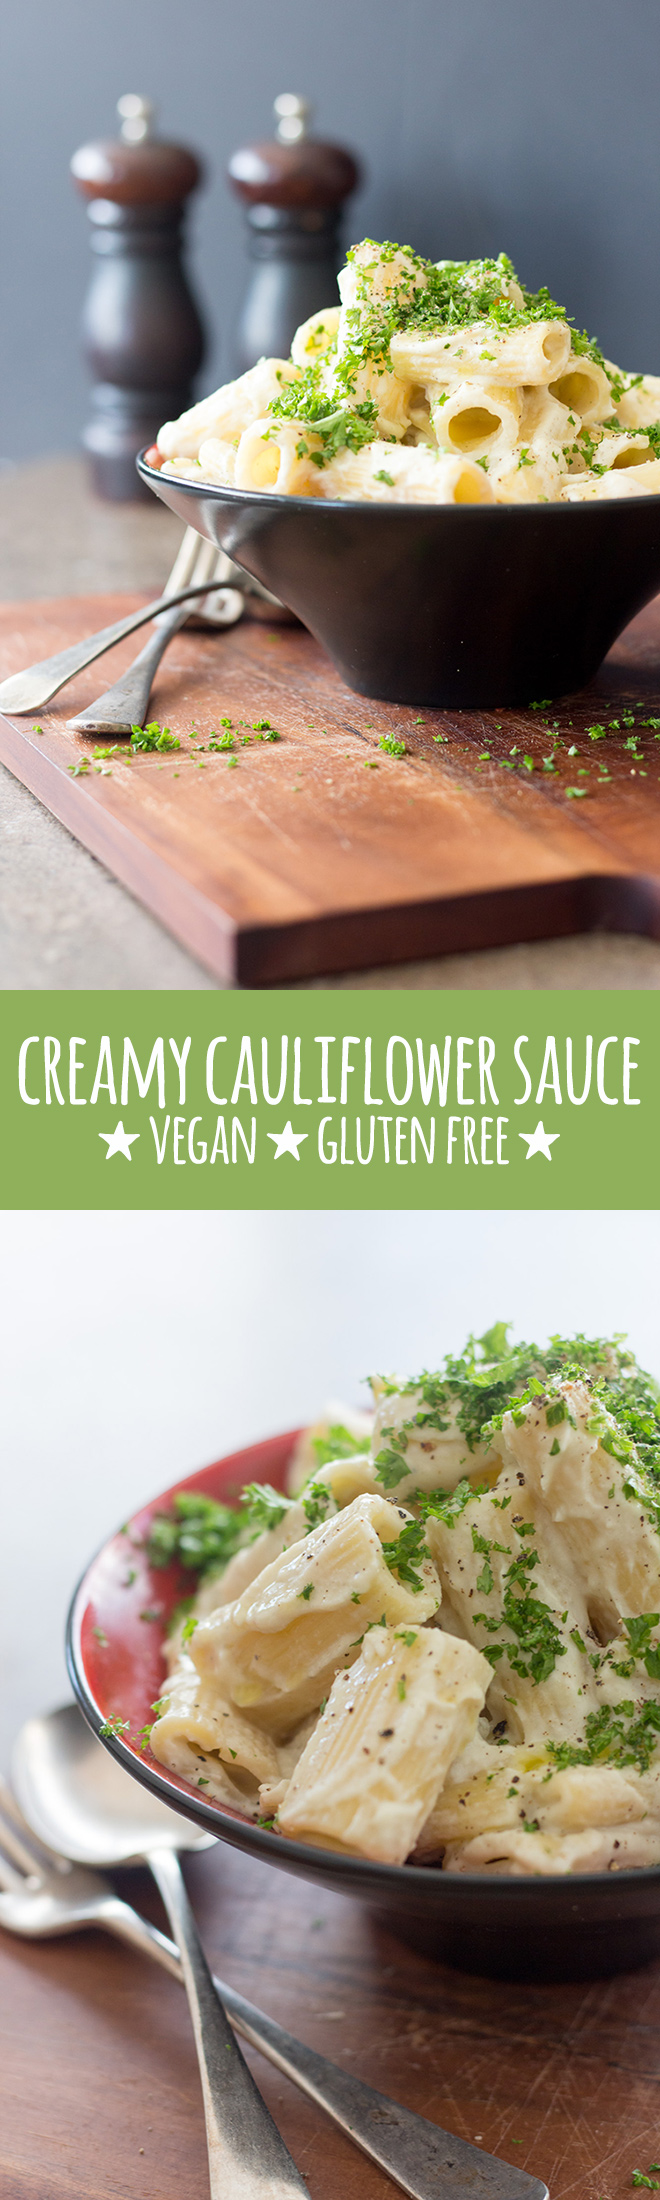 Creamy, dreamy pasta sauce made with cauliflower, cashews and a few simple flavourings.